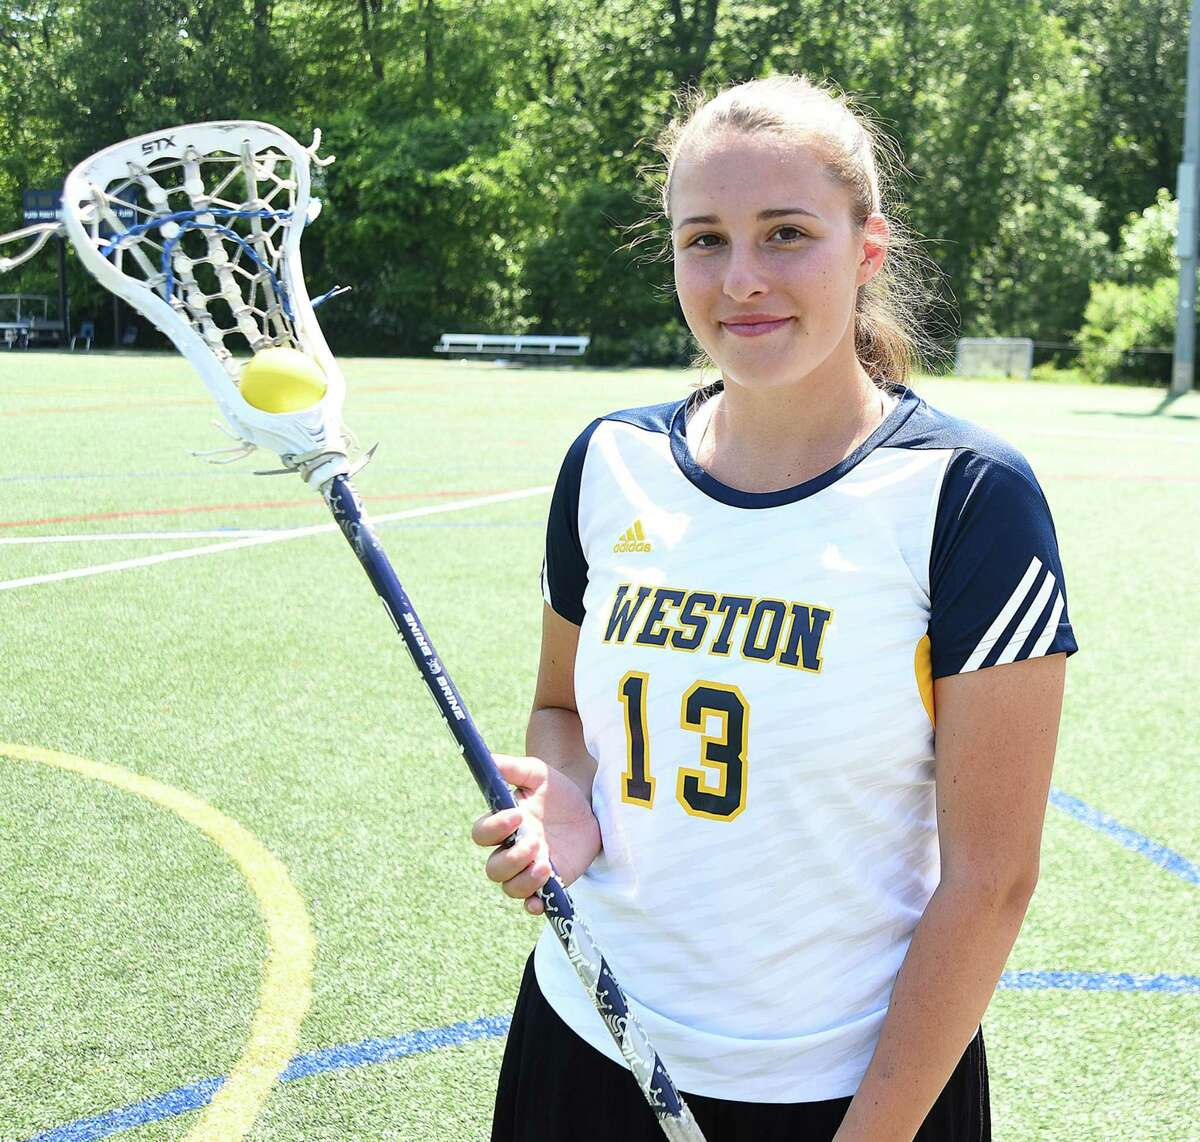 Taylor Moore of Weston recently wrapped up her career as the school's all-time leading scorer. She also led the Trojans to the SWC and Class S runner-up positions in her final season as a Trojan.